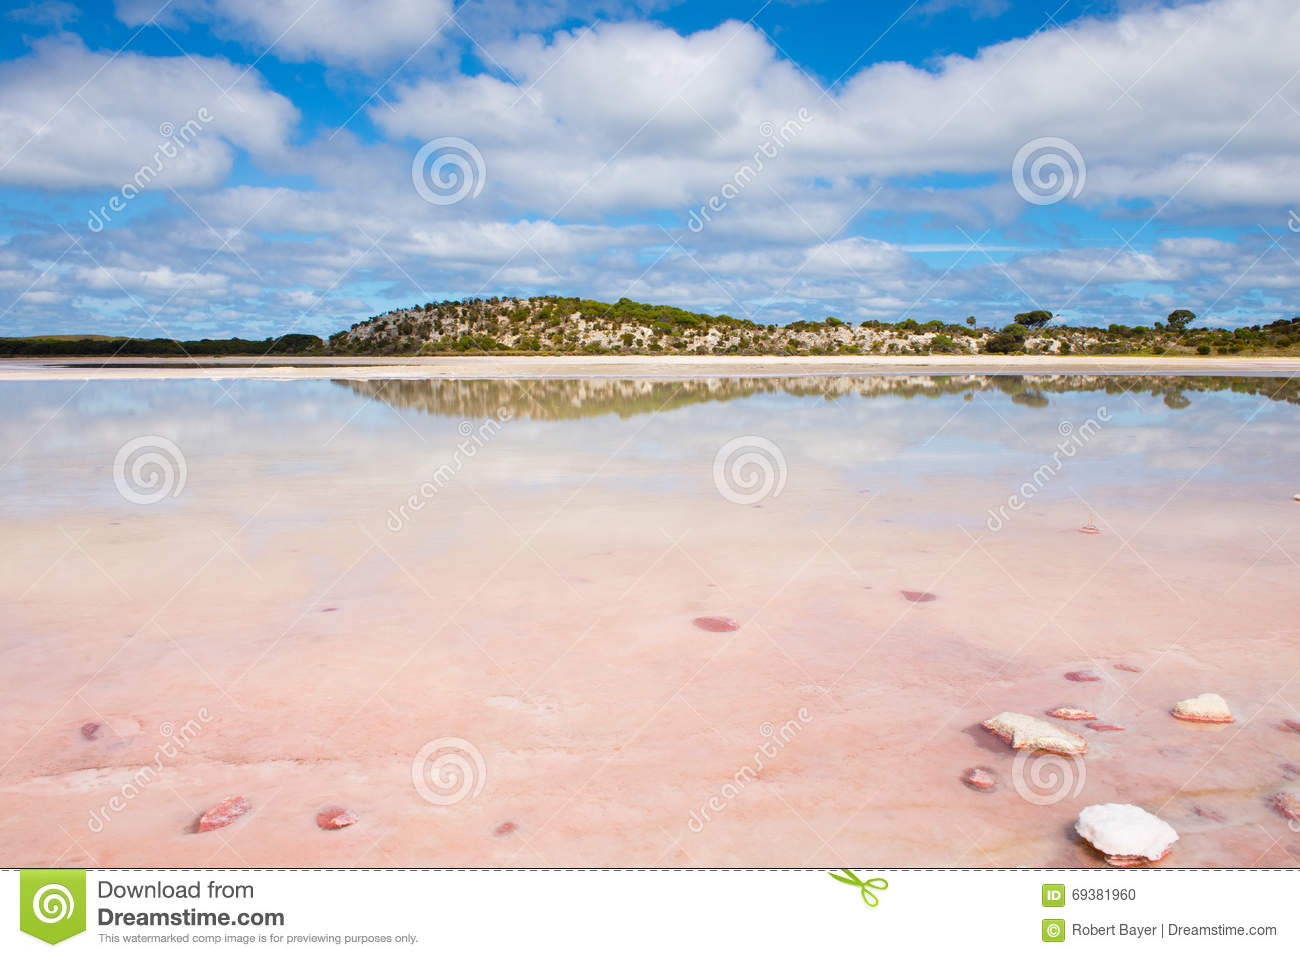 Scenic Salt Lake Rottnest Island Australia Stock Photo.